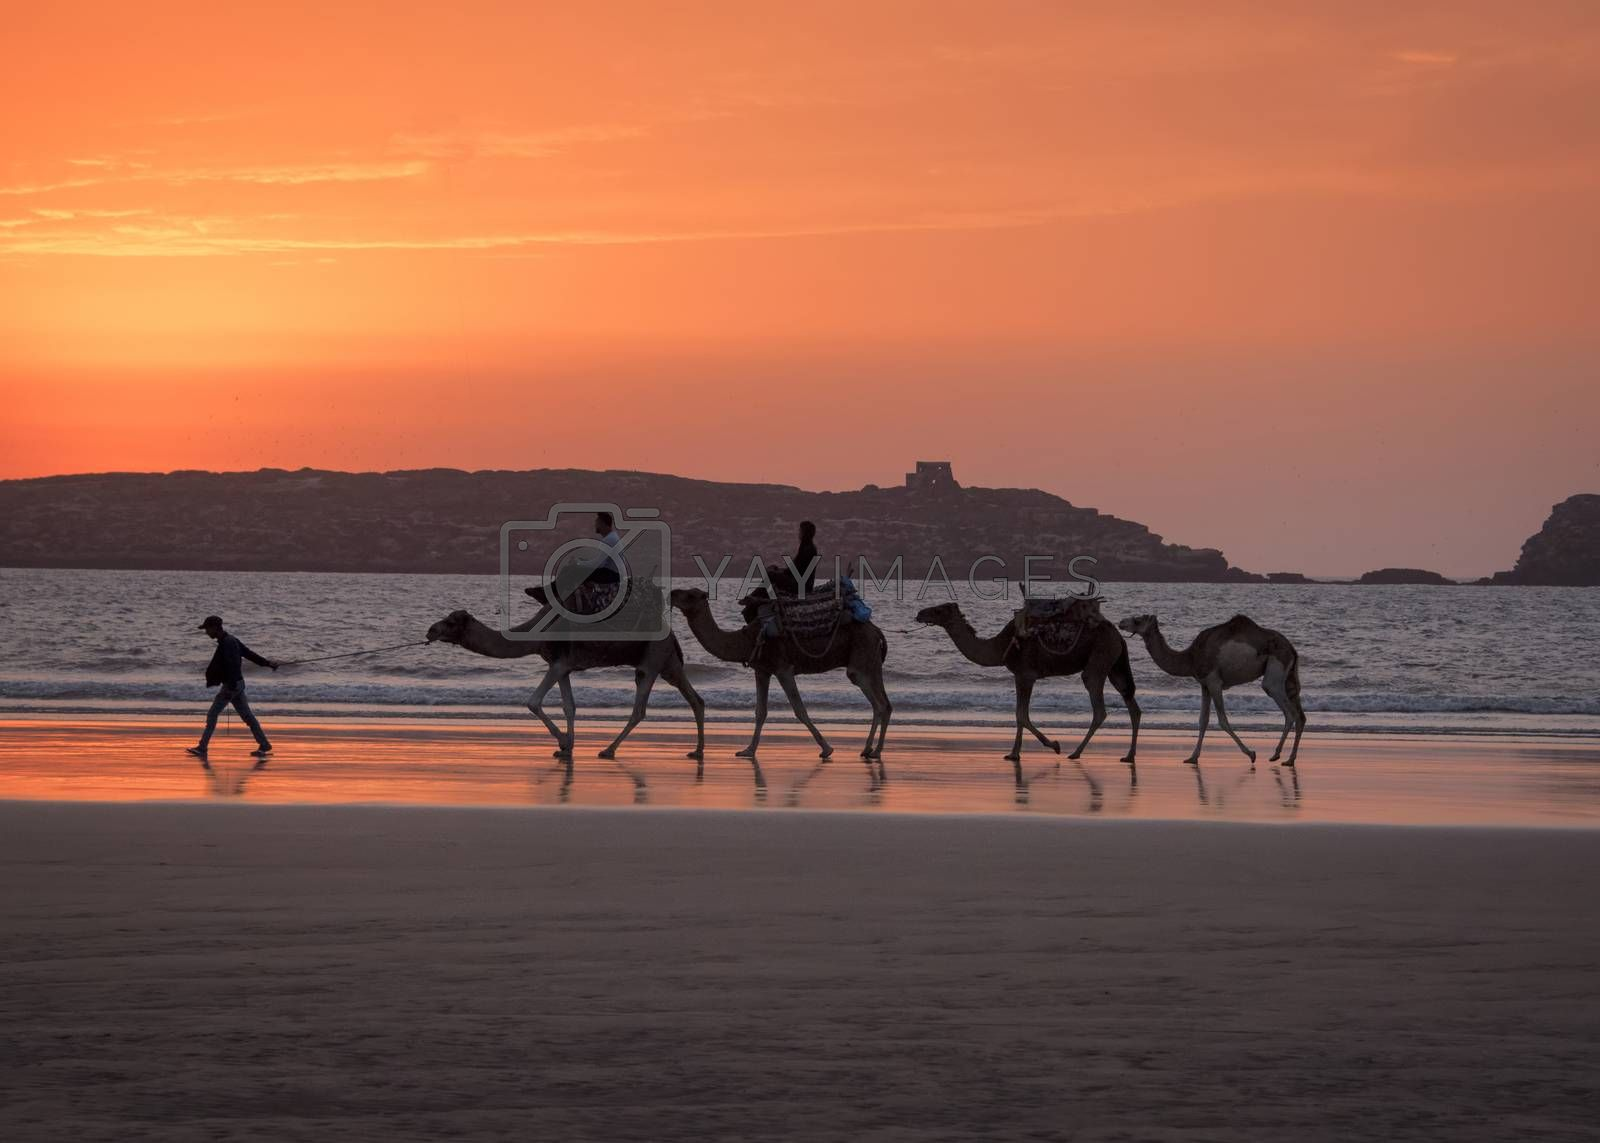 Essaouria, Morocco - September 2017: Camel train for the tourists being led along the beach at Sunset